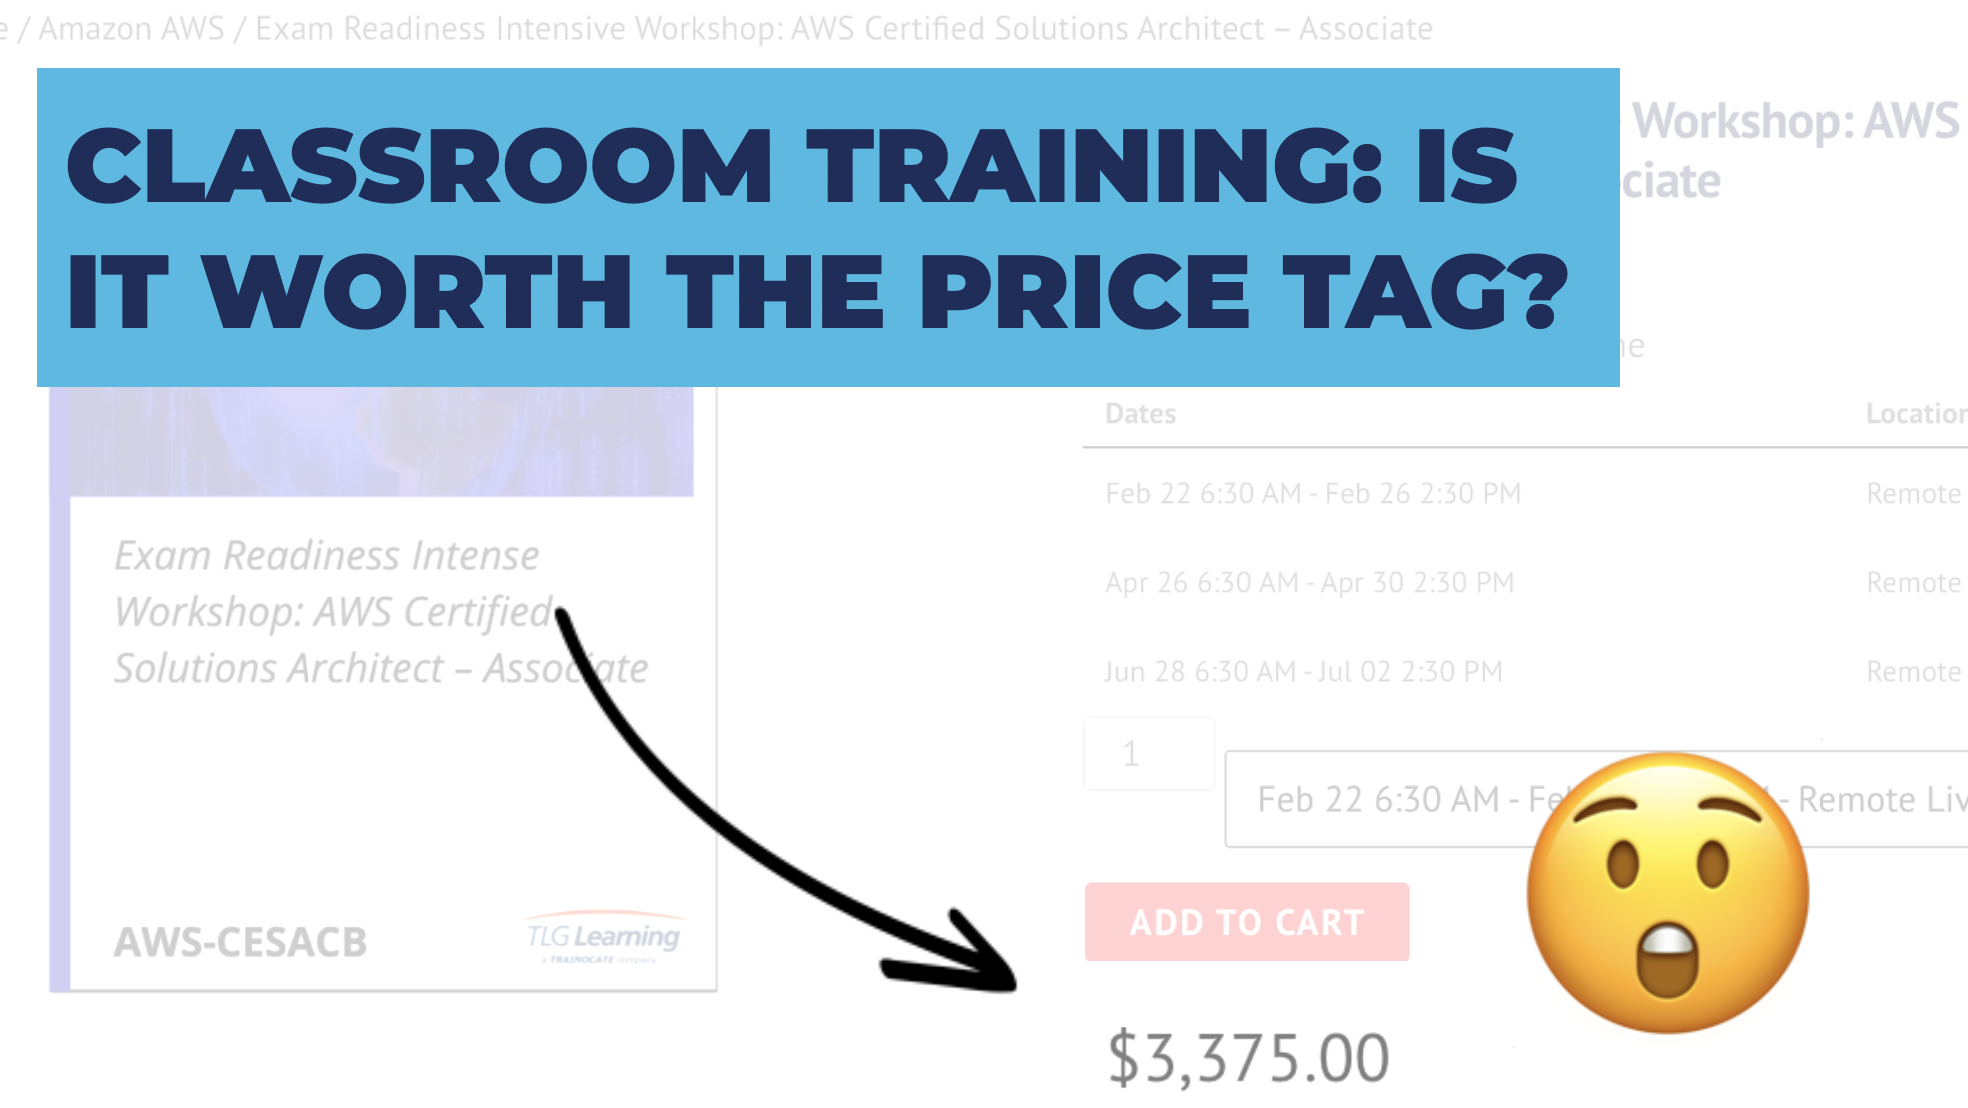 Classroom Training: Is It Worth The Price Tag?